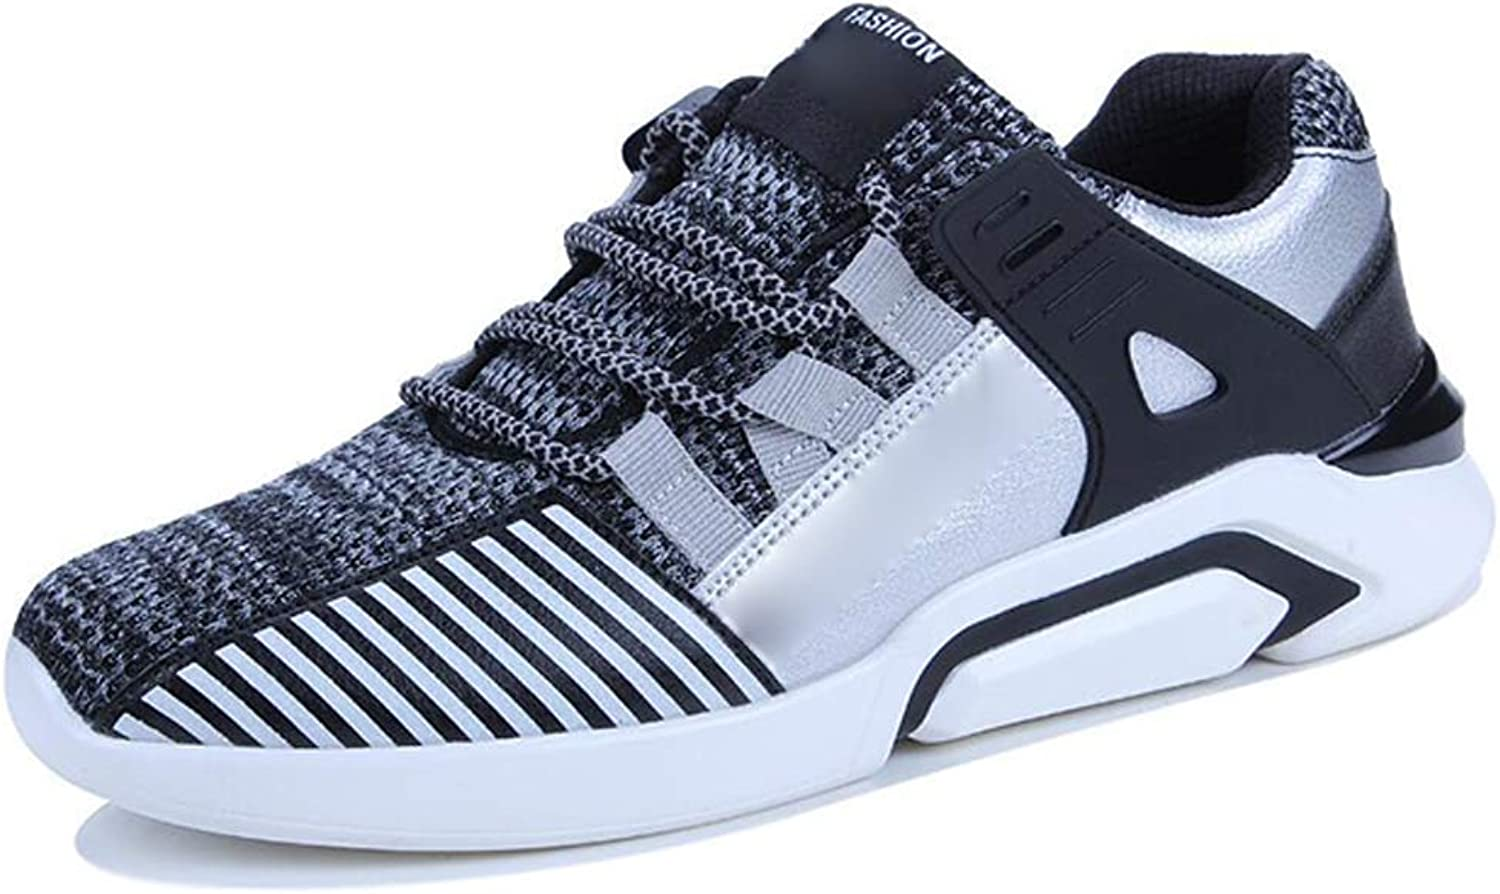 Outdoor Sneakers for Mens Men's Running shoes Outdoor Sports Casual Fashion Versatile Low Cut Breathable Three color and Multi Size (color   Grey, Size   39)